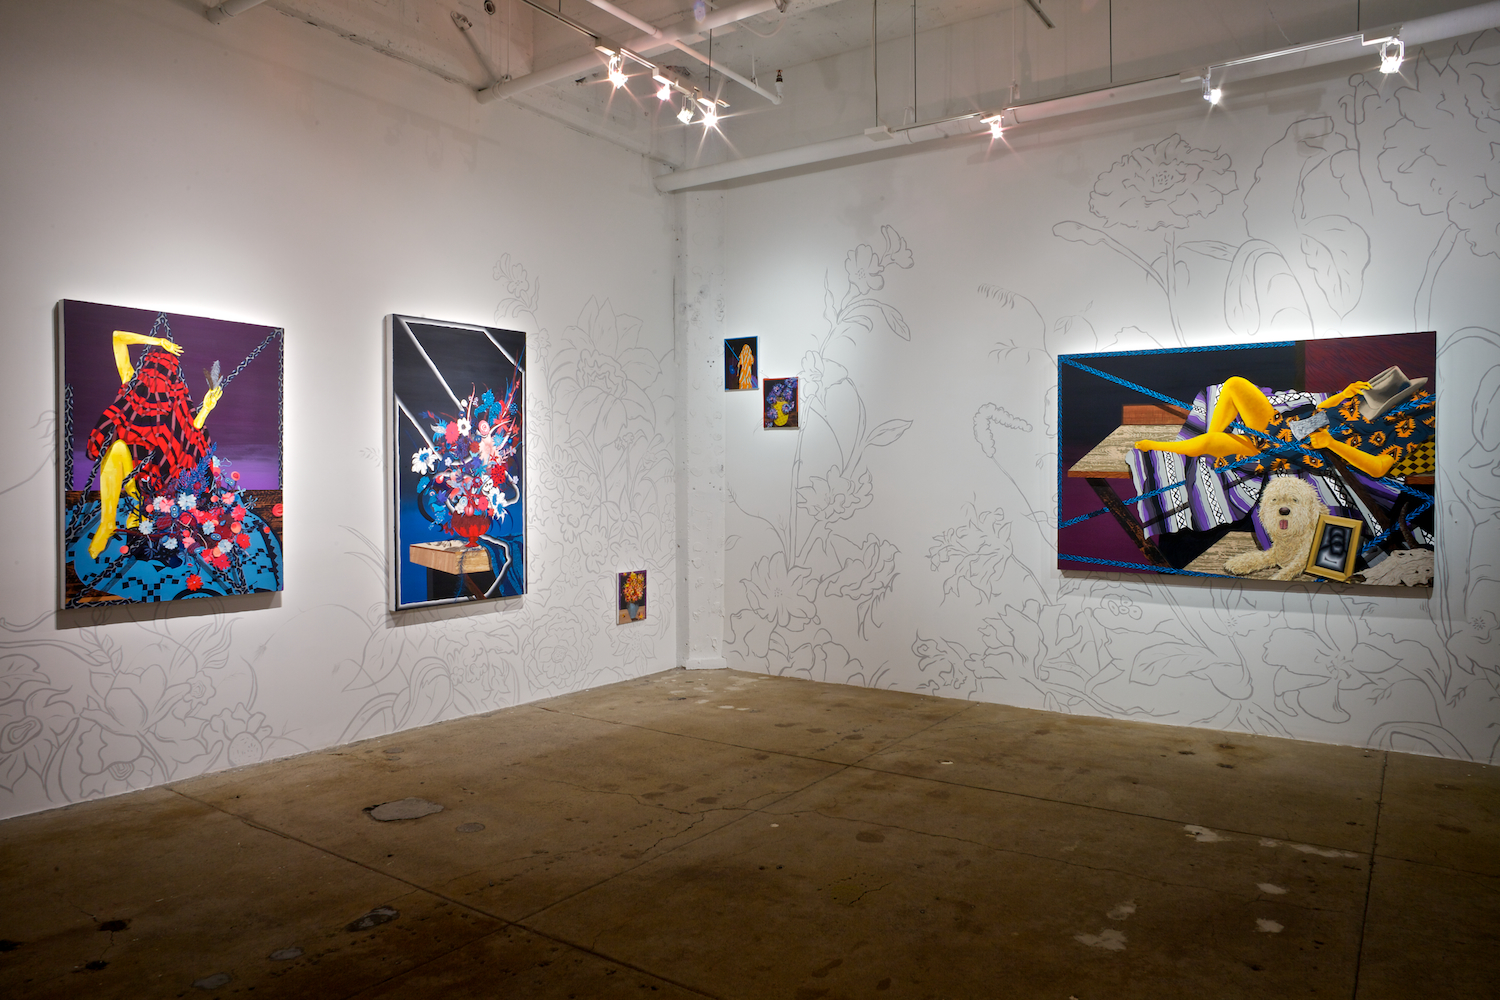 Amir H. Fallah: The Collected,  installation view, Gallery Wendi Norris, San Francisco, CA, March 14 — April 27, 2013